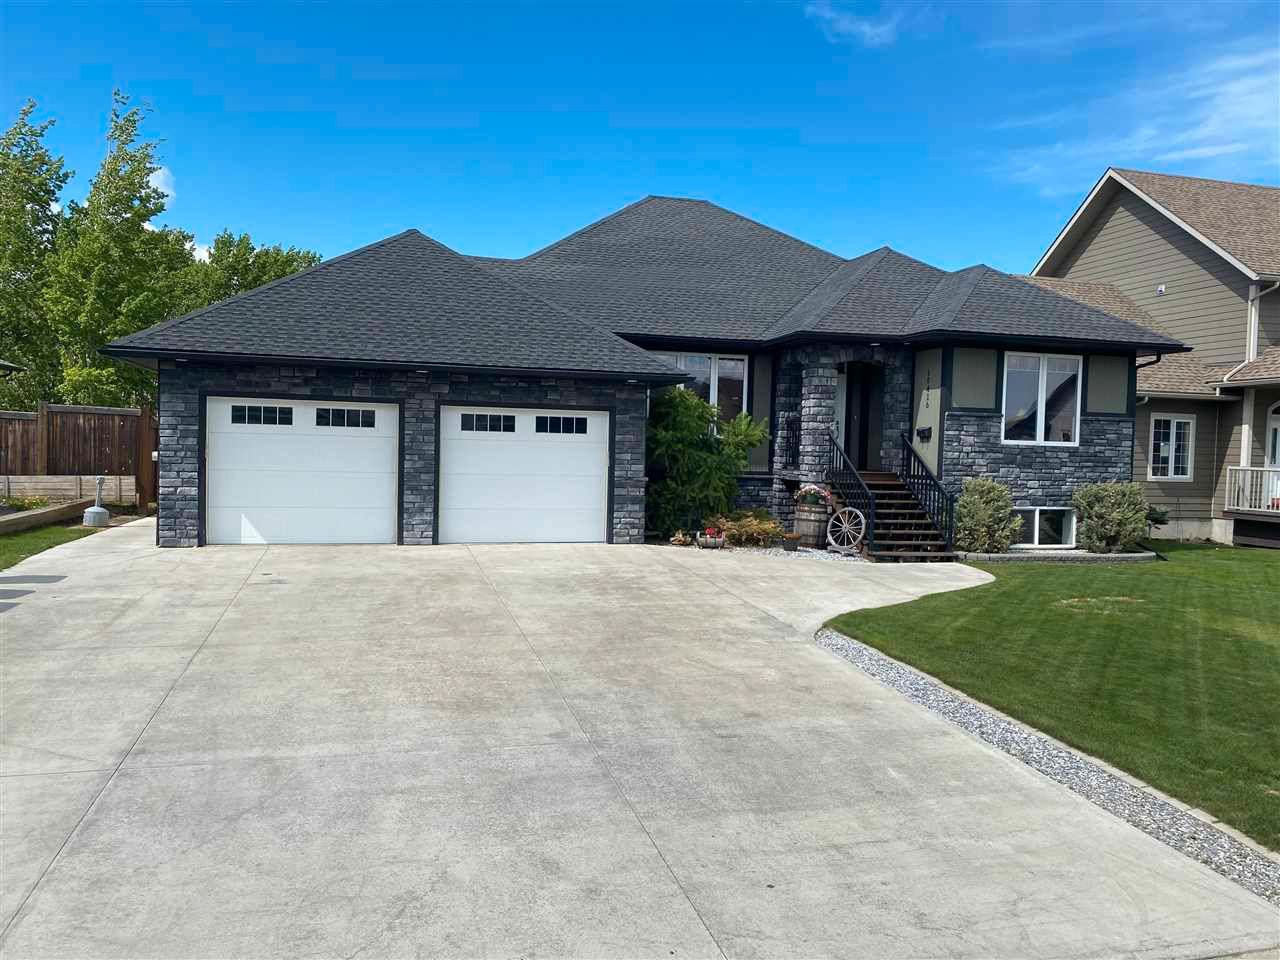 """Main Photo: 10416 114A Avenue in Fort St. John: Fort St. John - City NW House for sale in """"COUNTRY VIEW ESTATES"""" (Fort St. John (Zone 60))  : MLS®# R2585634"""